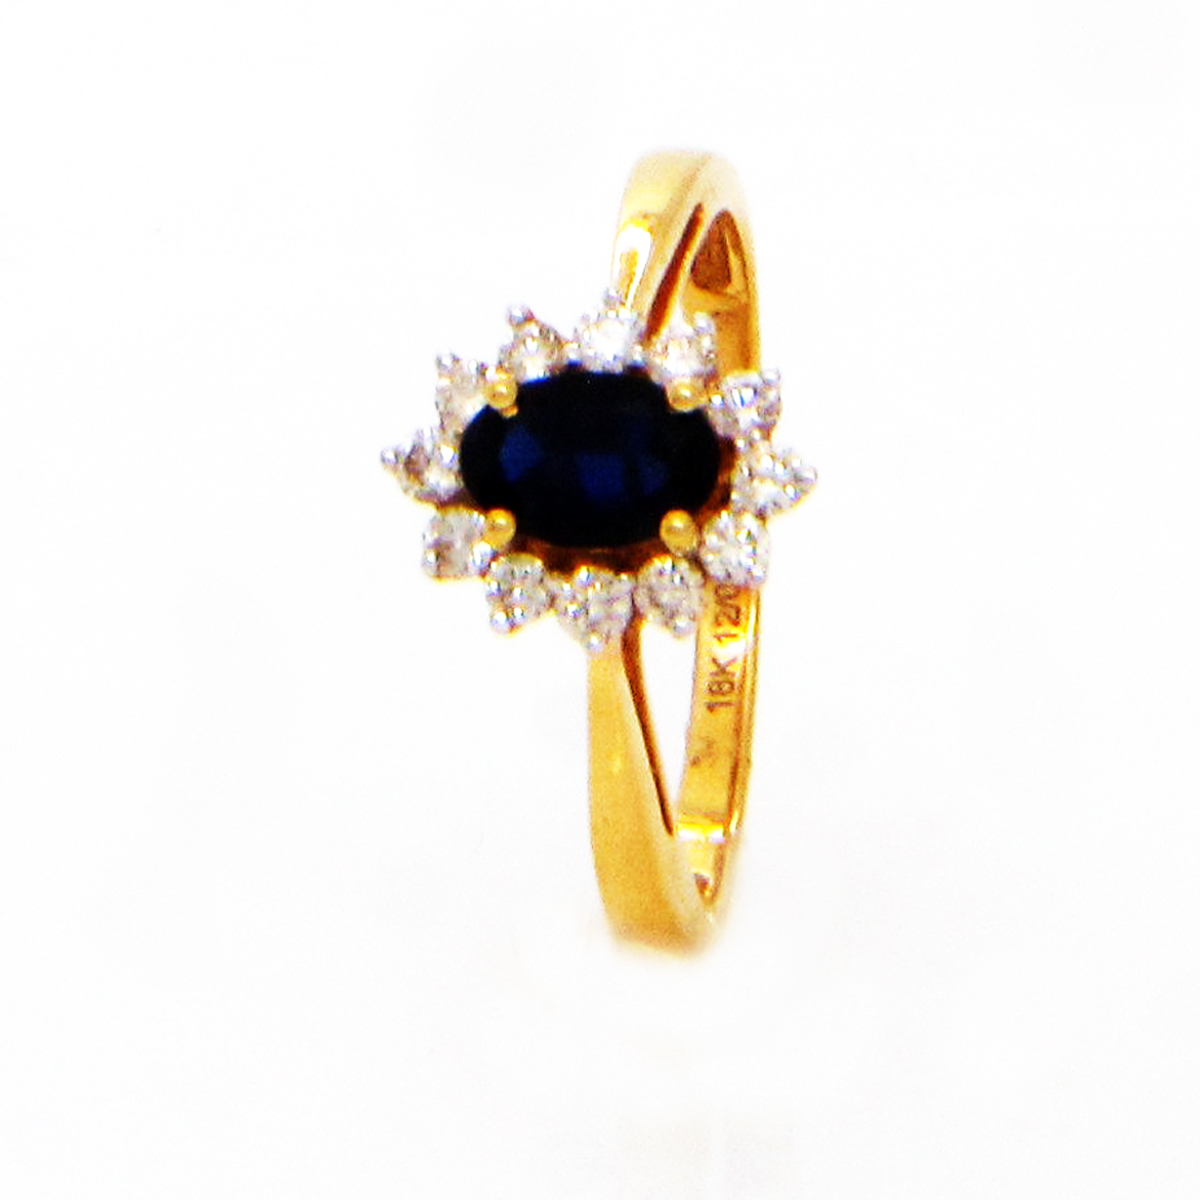 Popley Colours Of Joy Diamond Ring in Yellow Gold with Colour Stone